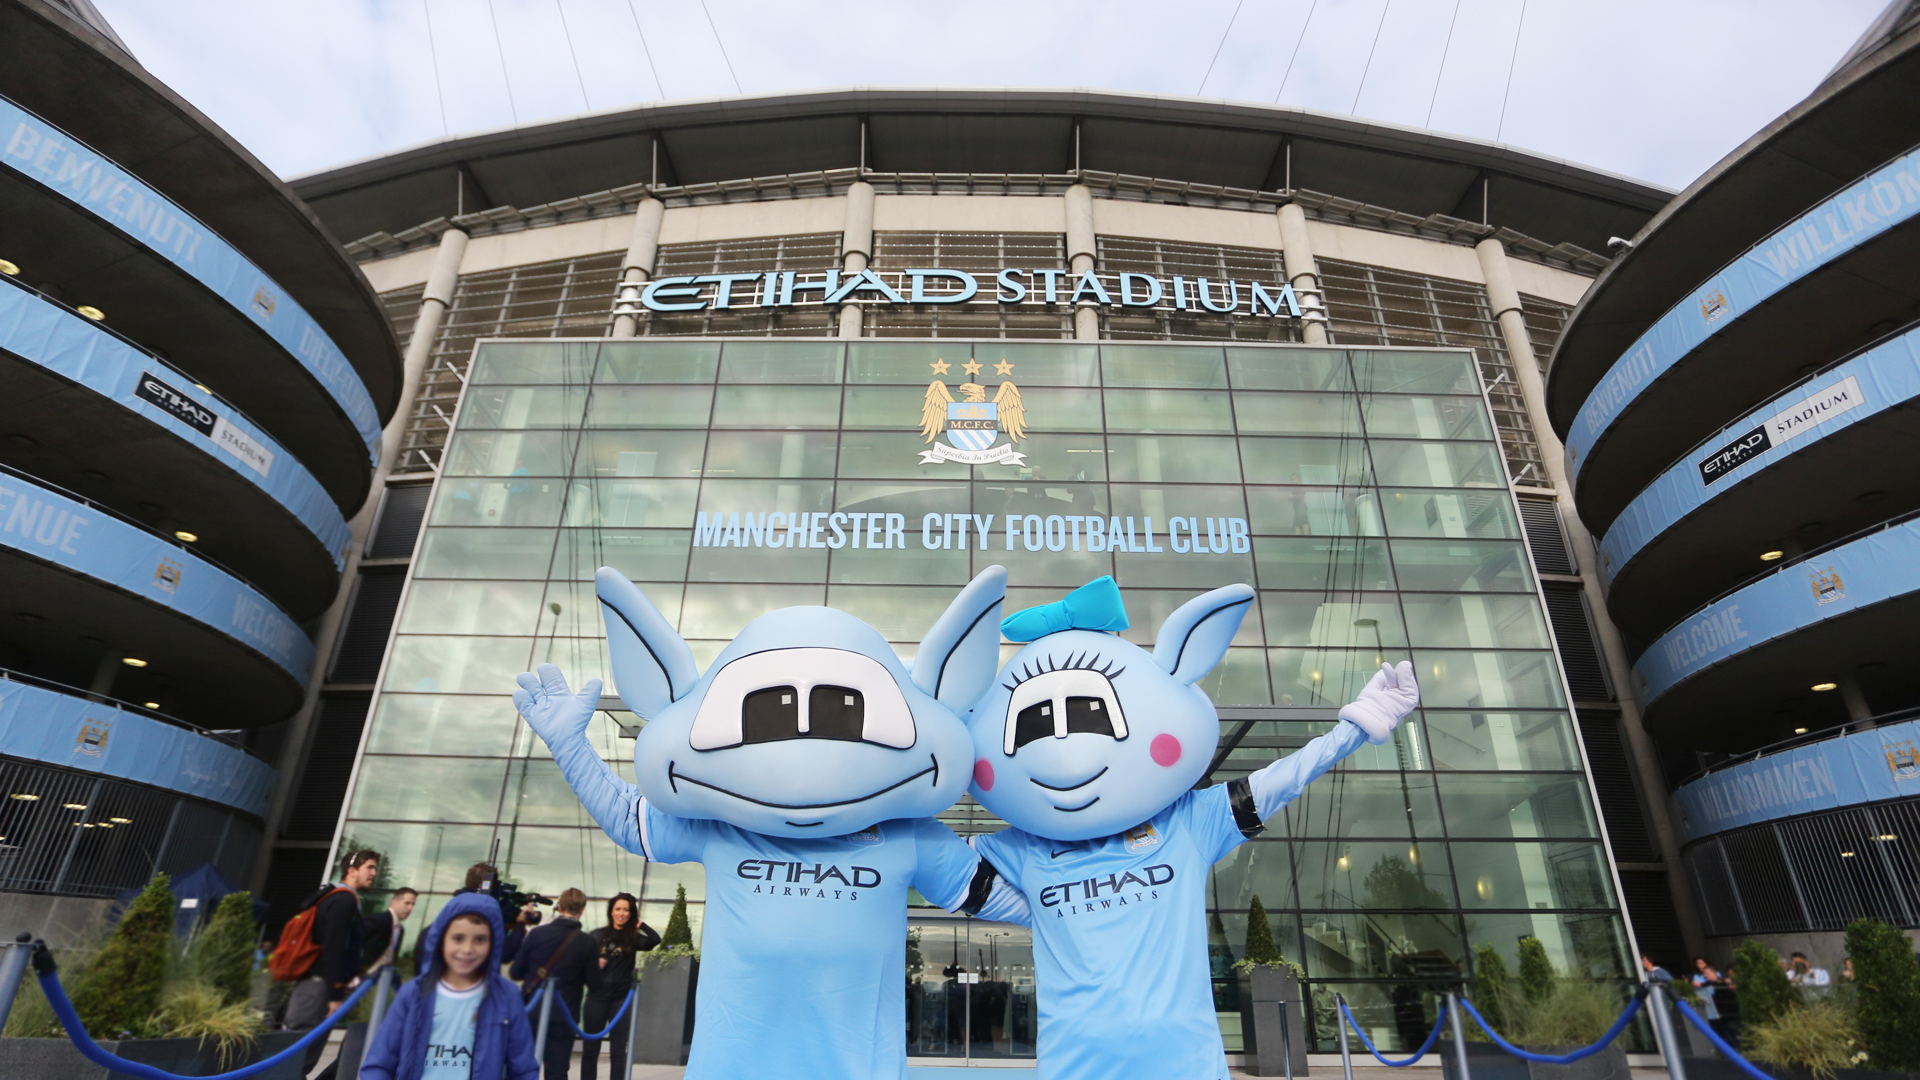 Manchester City show how football clubs' investment can boost local economies